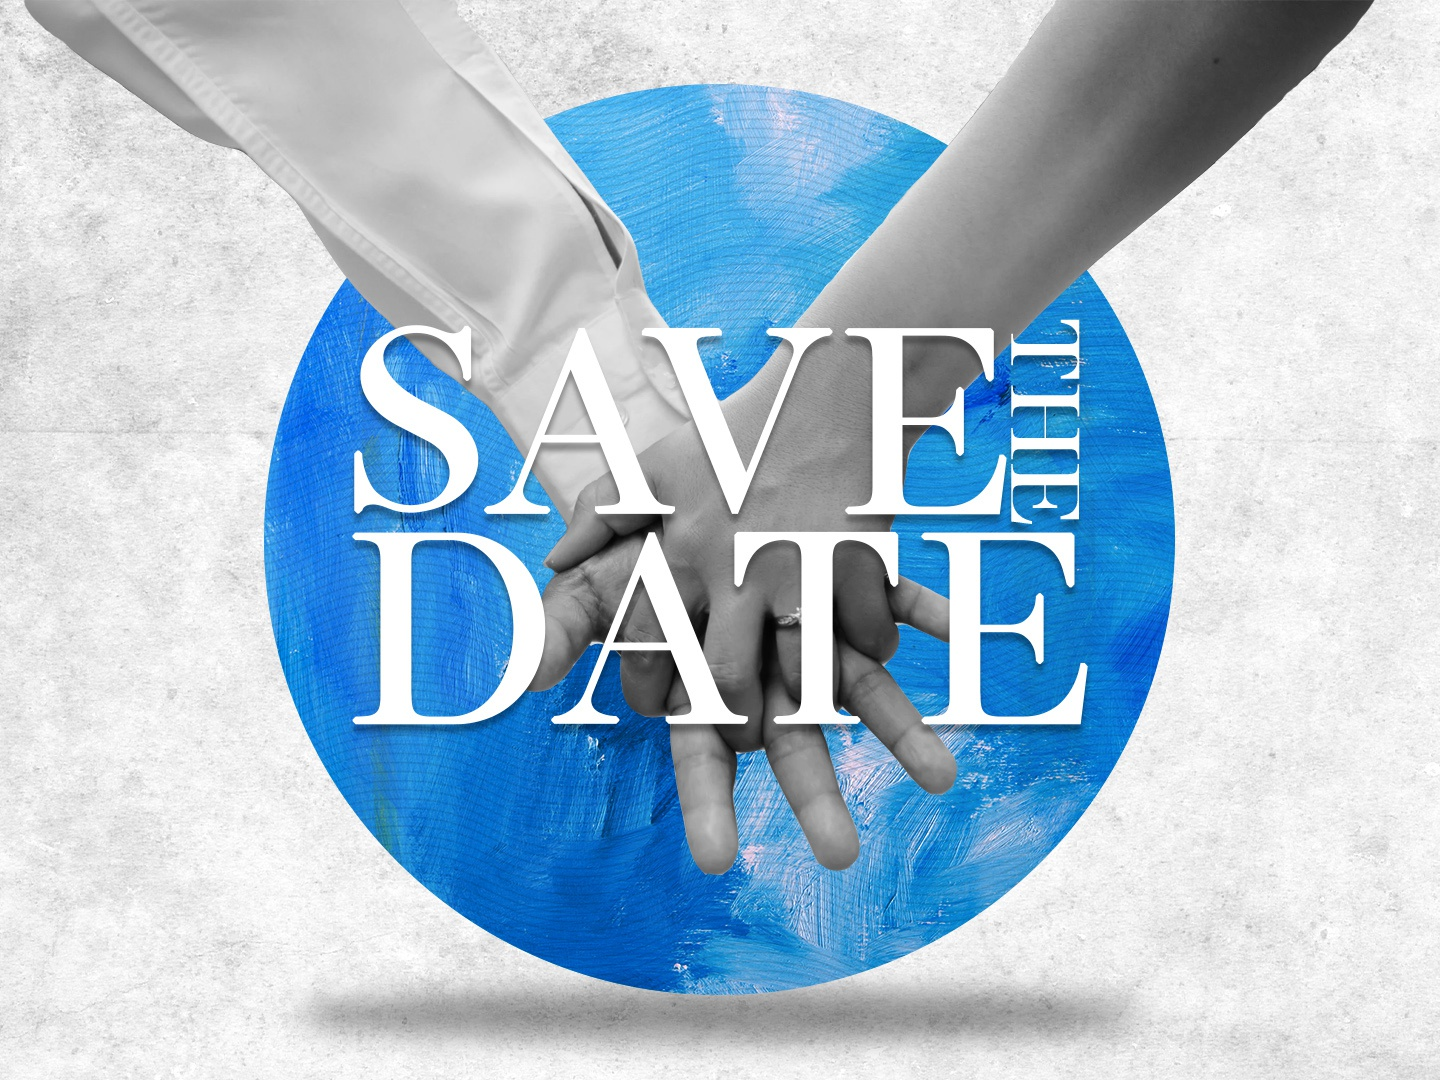 Save The Date - Relationships Series by Lane Gramling | Dribbble